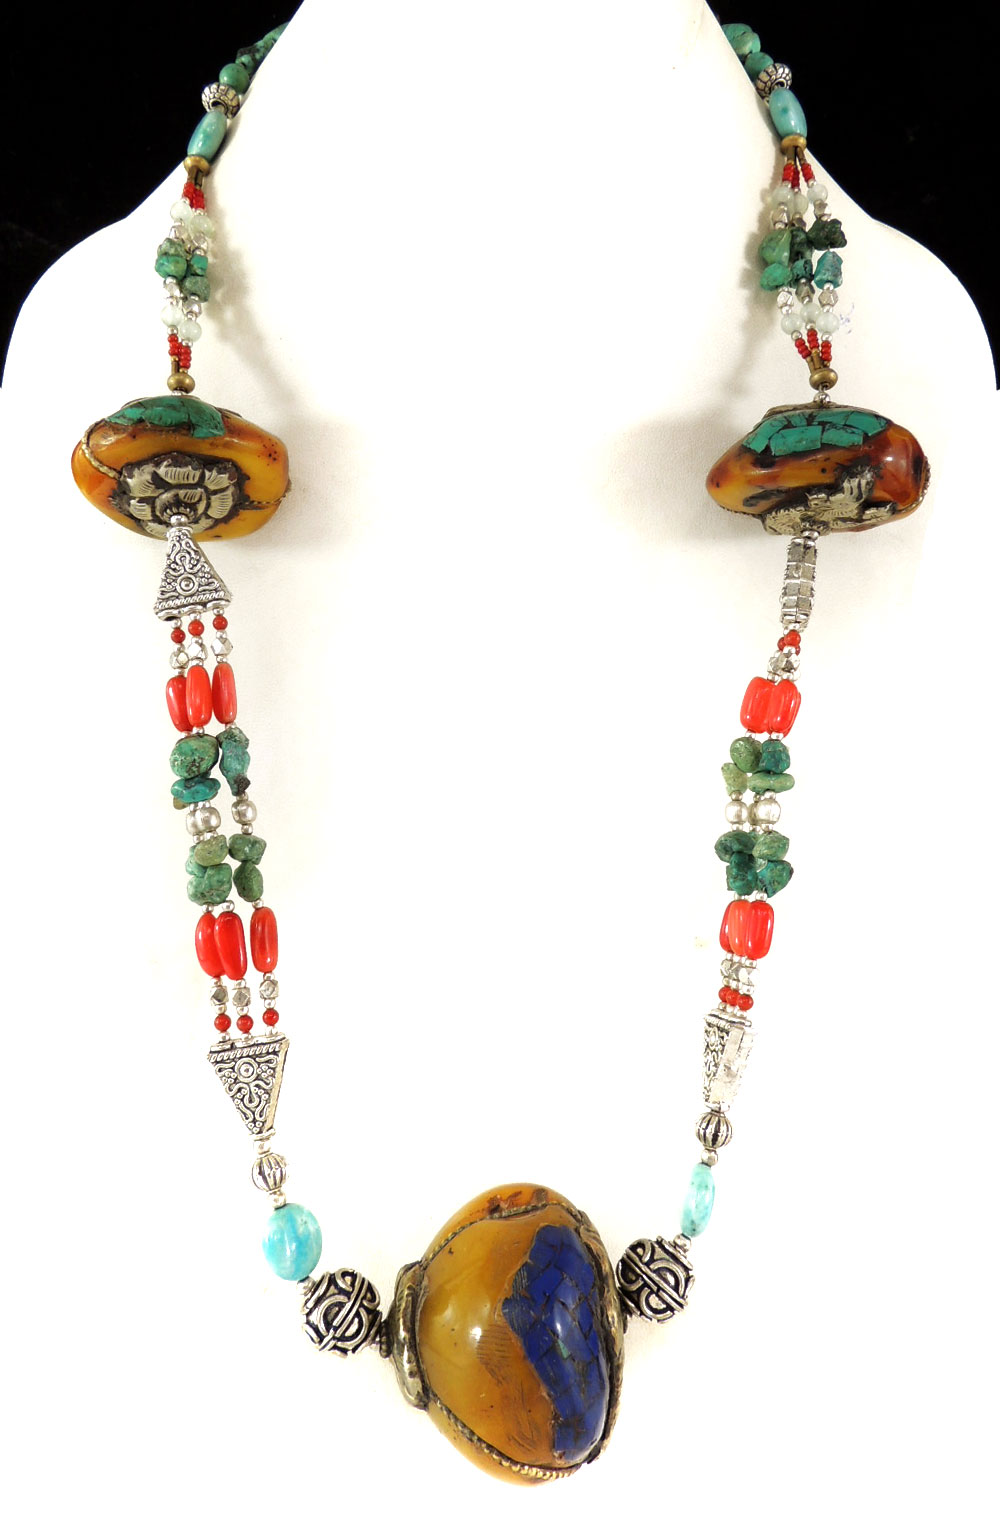 Tibetan Necklace Silver Repoussee Turquoise Stone Beads by